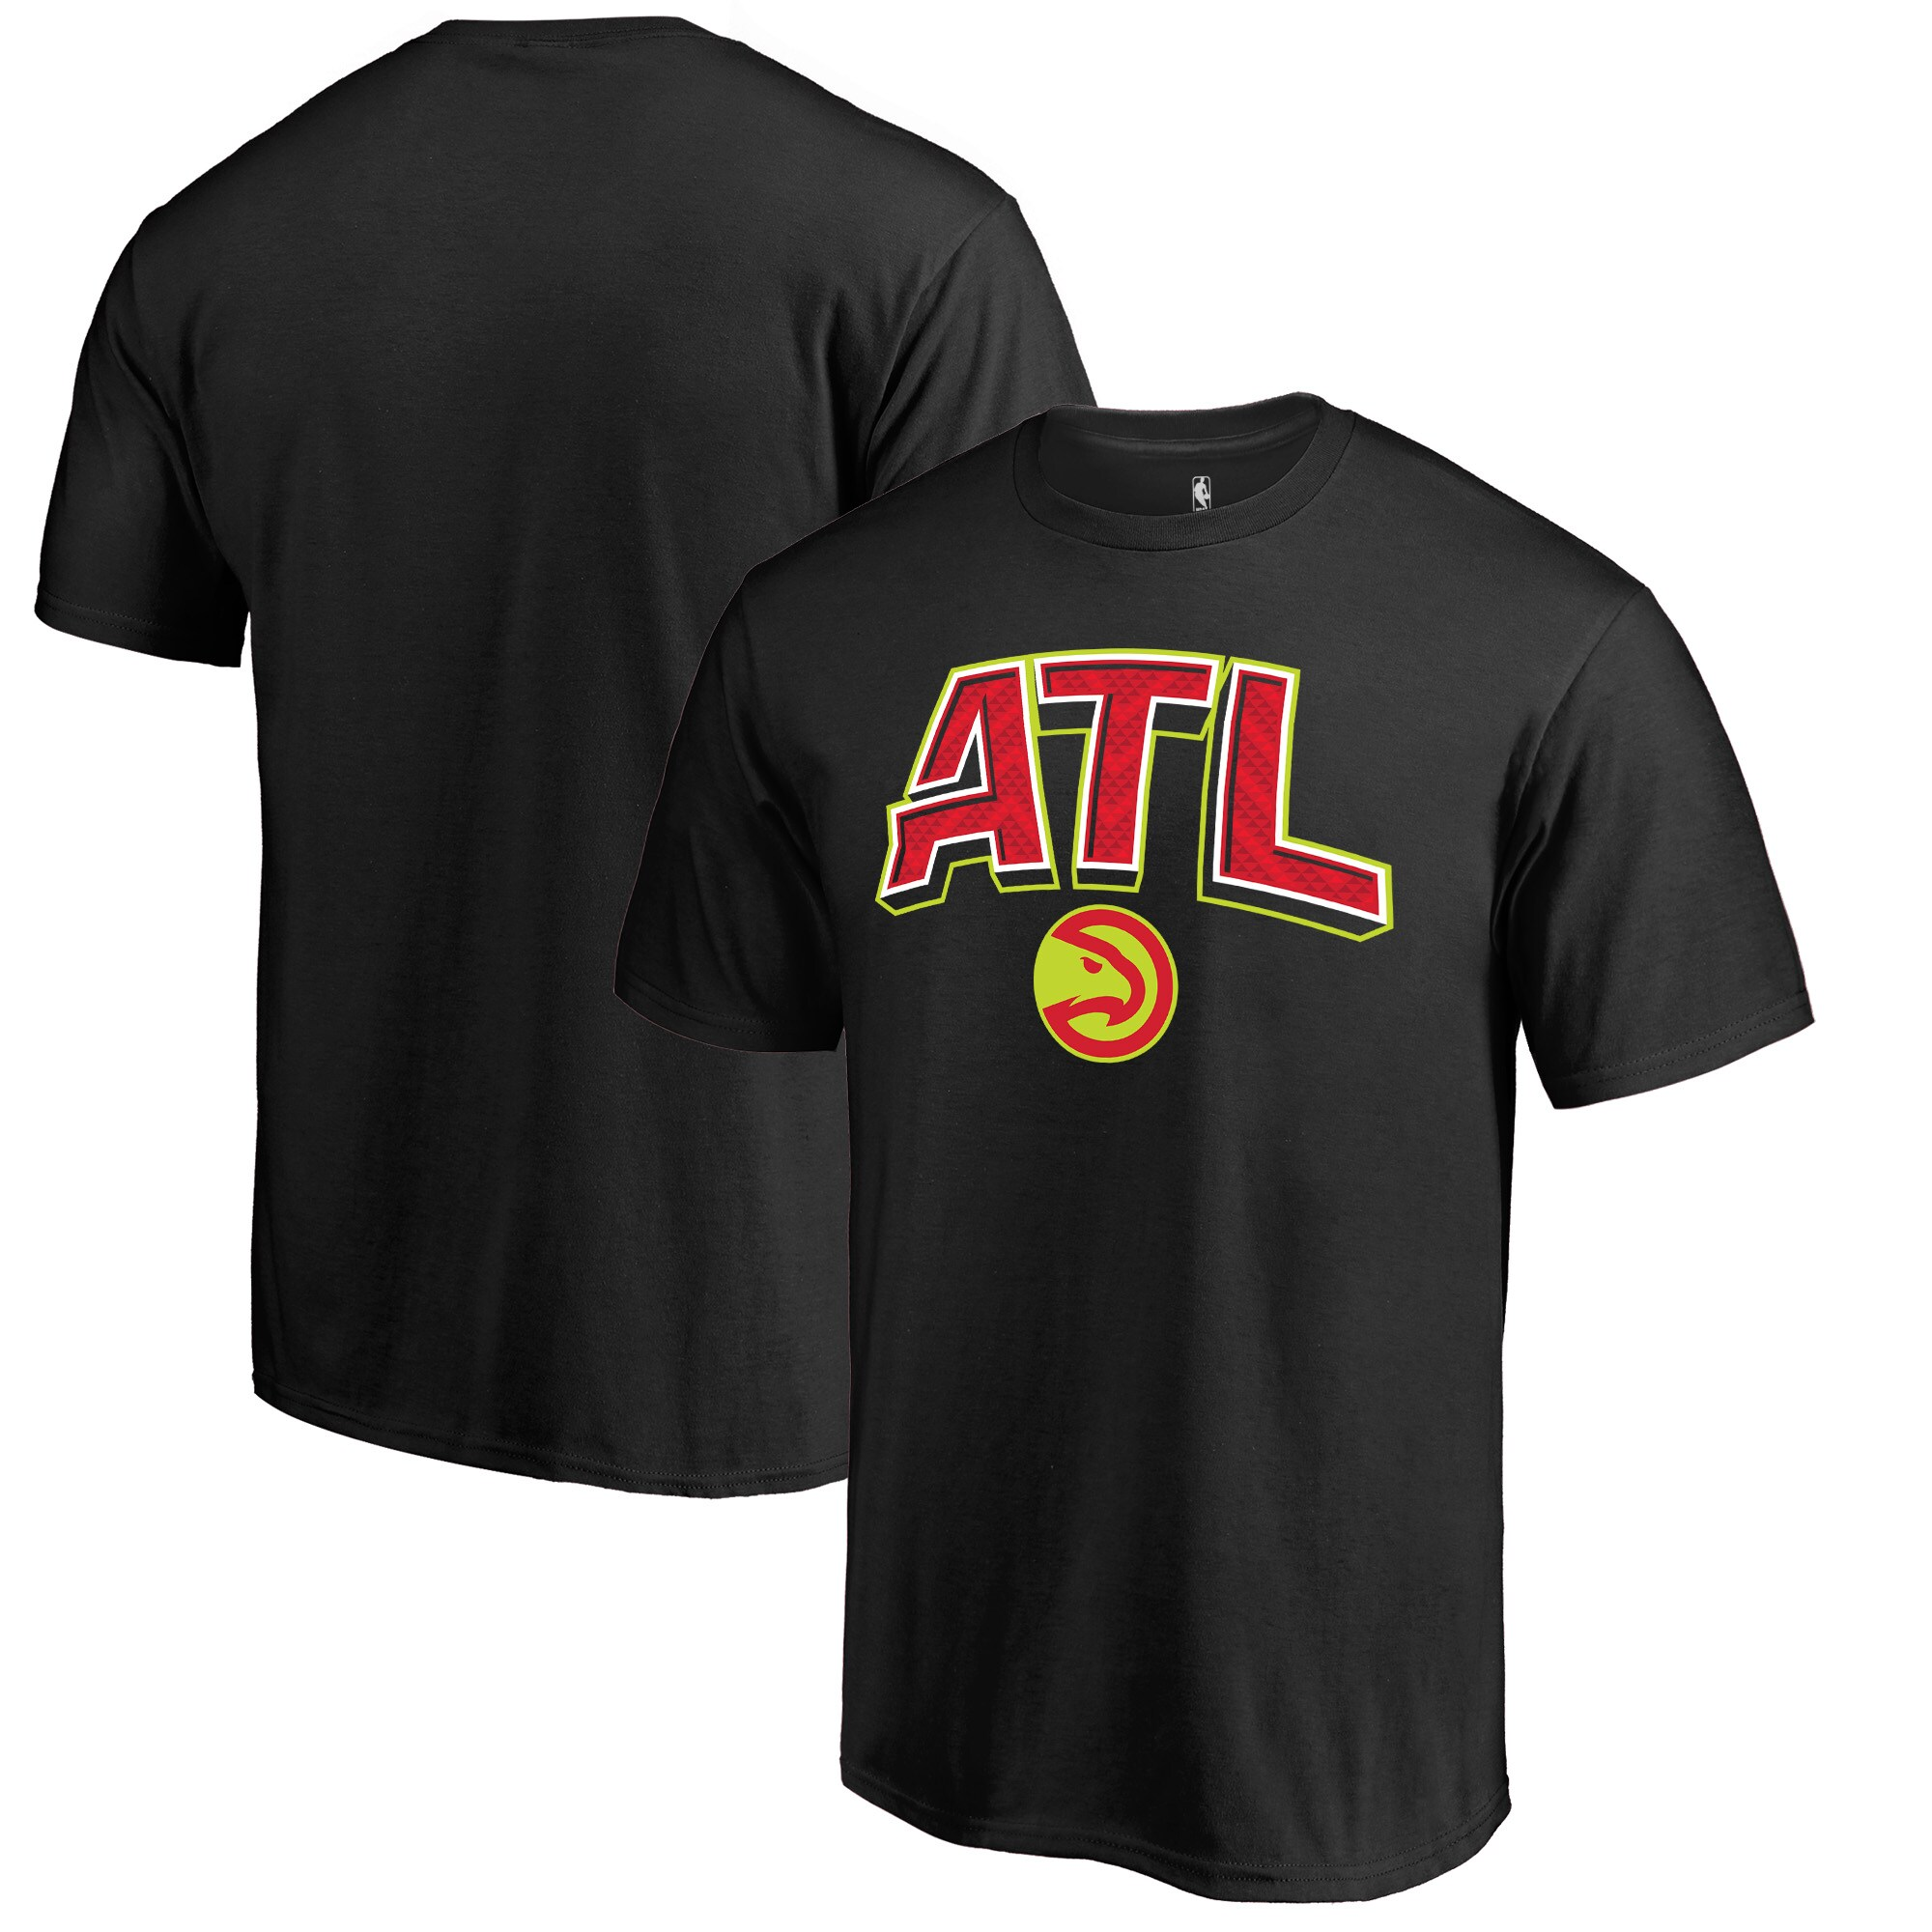 Atlanta Hawks Fanatics Branded Big & Tall ATL Hometown Collection T-Shirt - Black